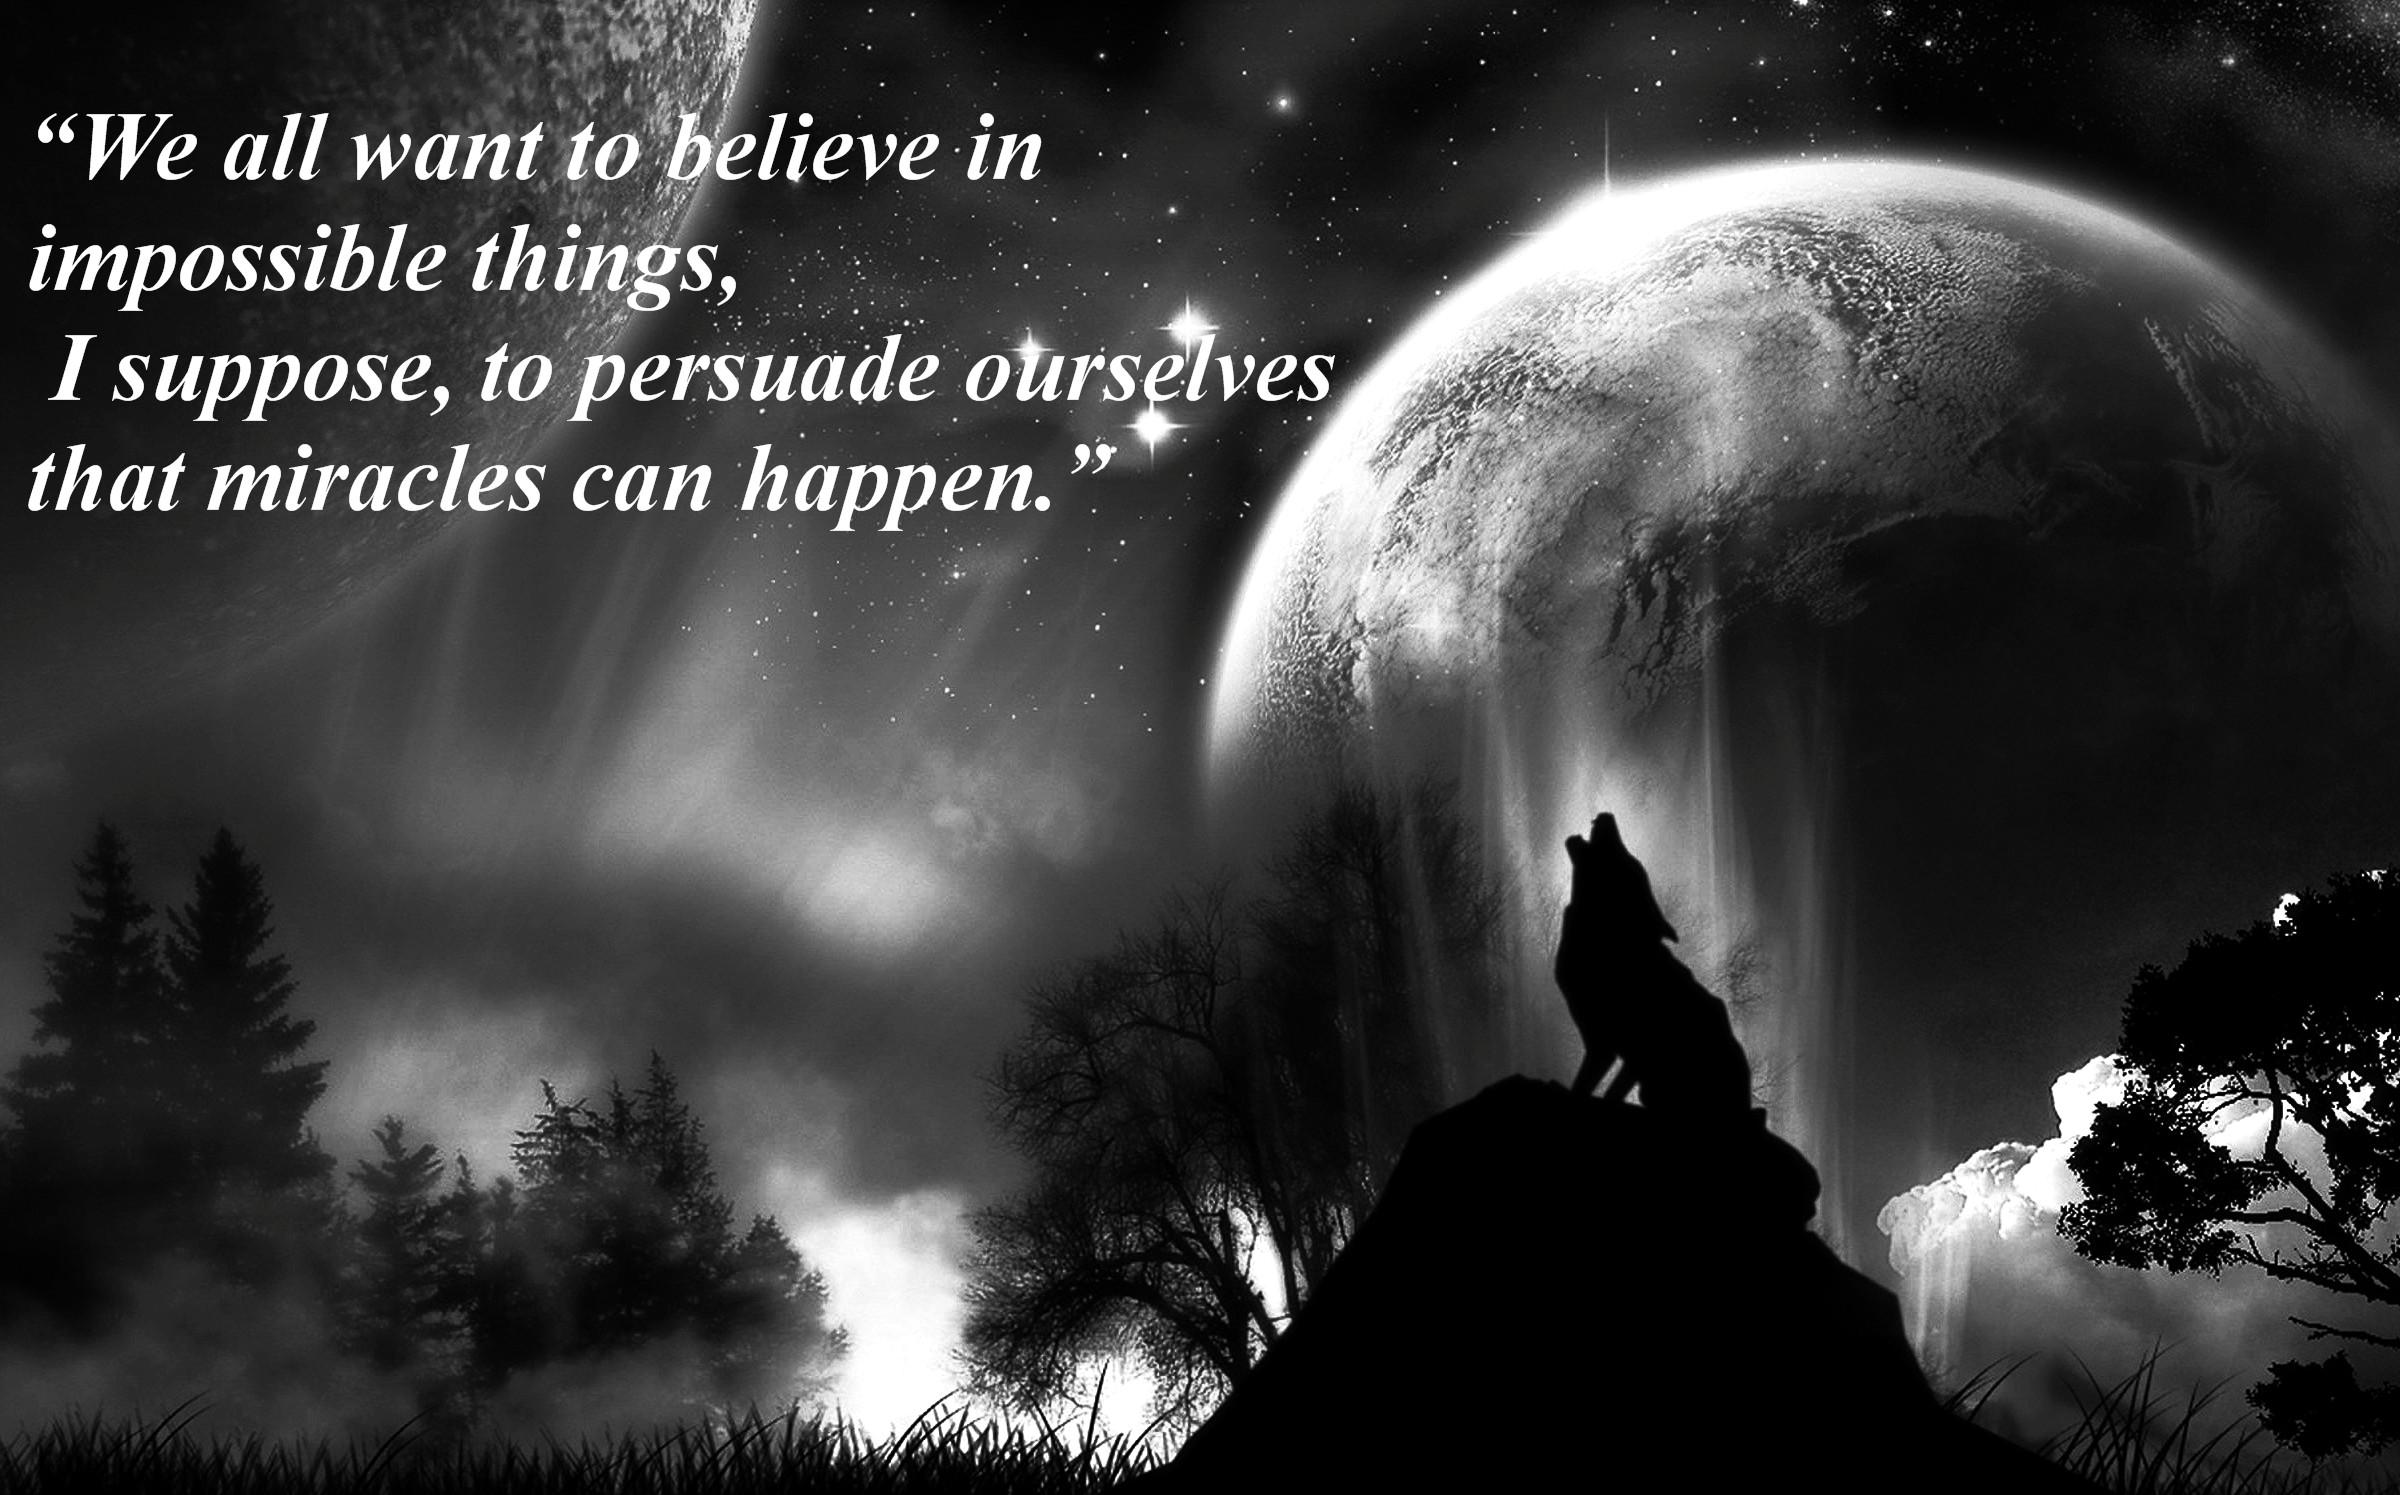 We all want to believe in impossible things… Paul Auster (2400×1495)